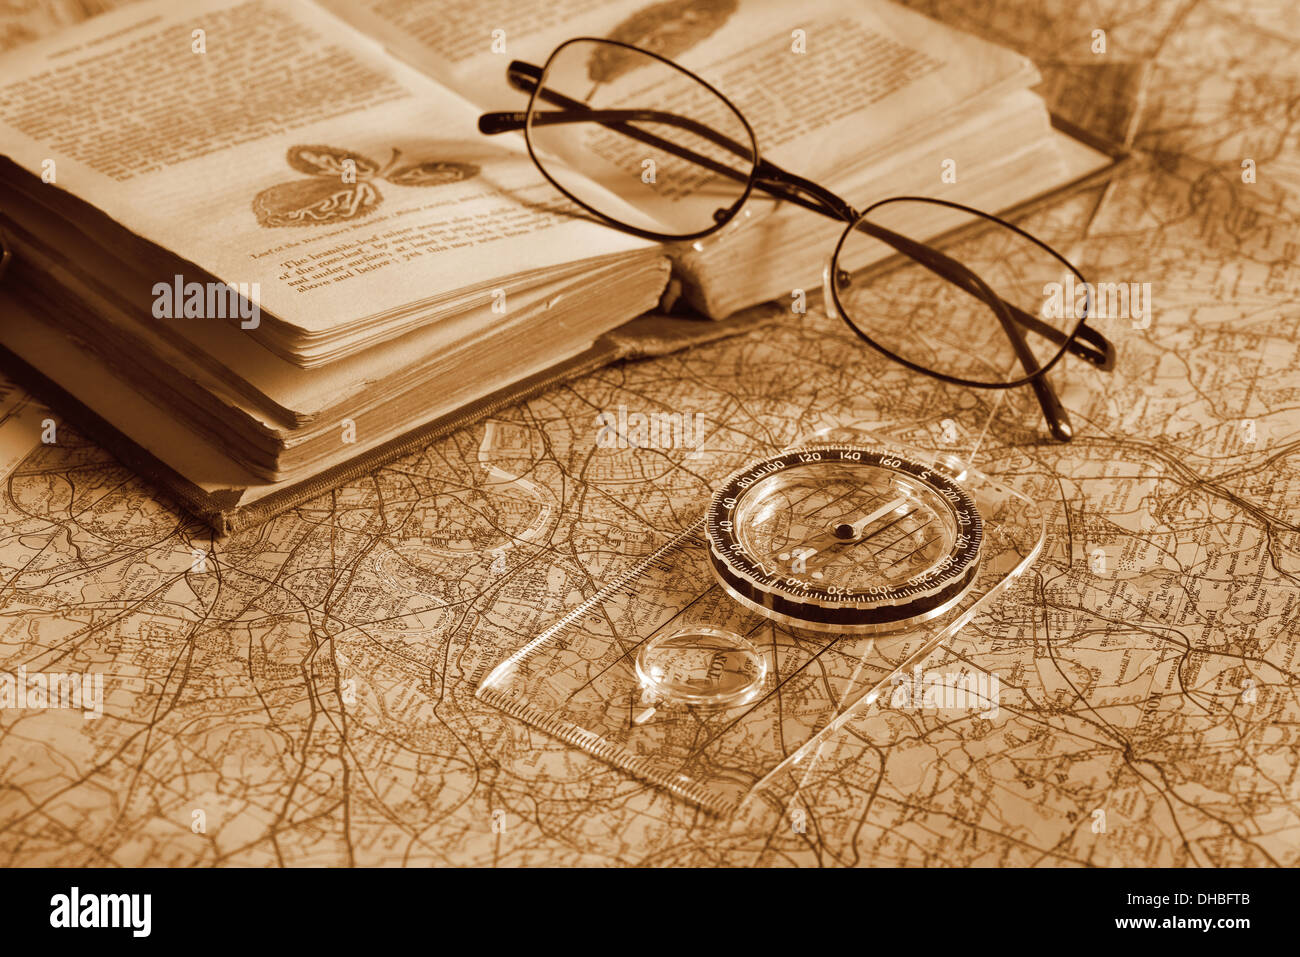 classic compass on colorful map preparing for journey with lots of hills steep valleys - Stock Image